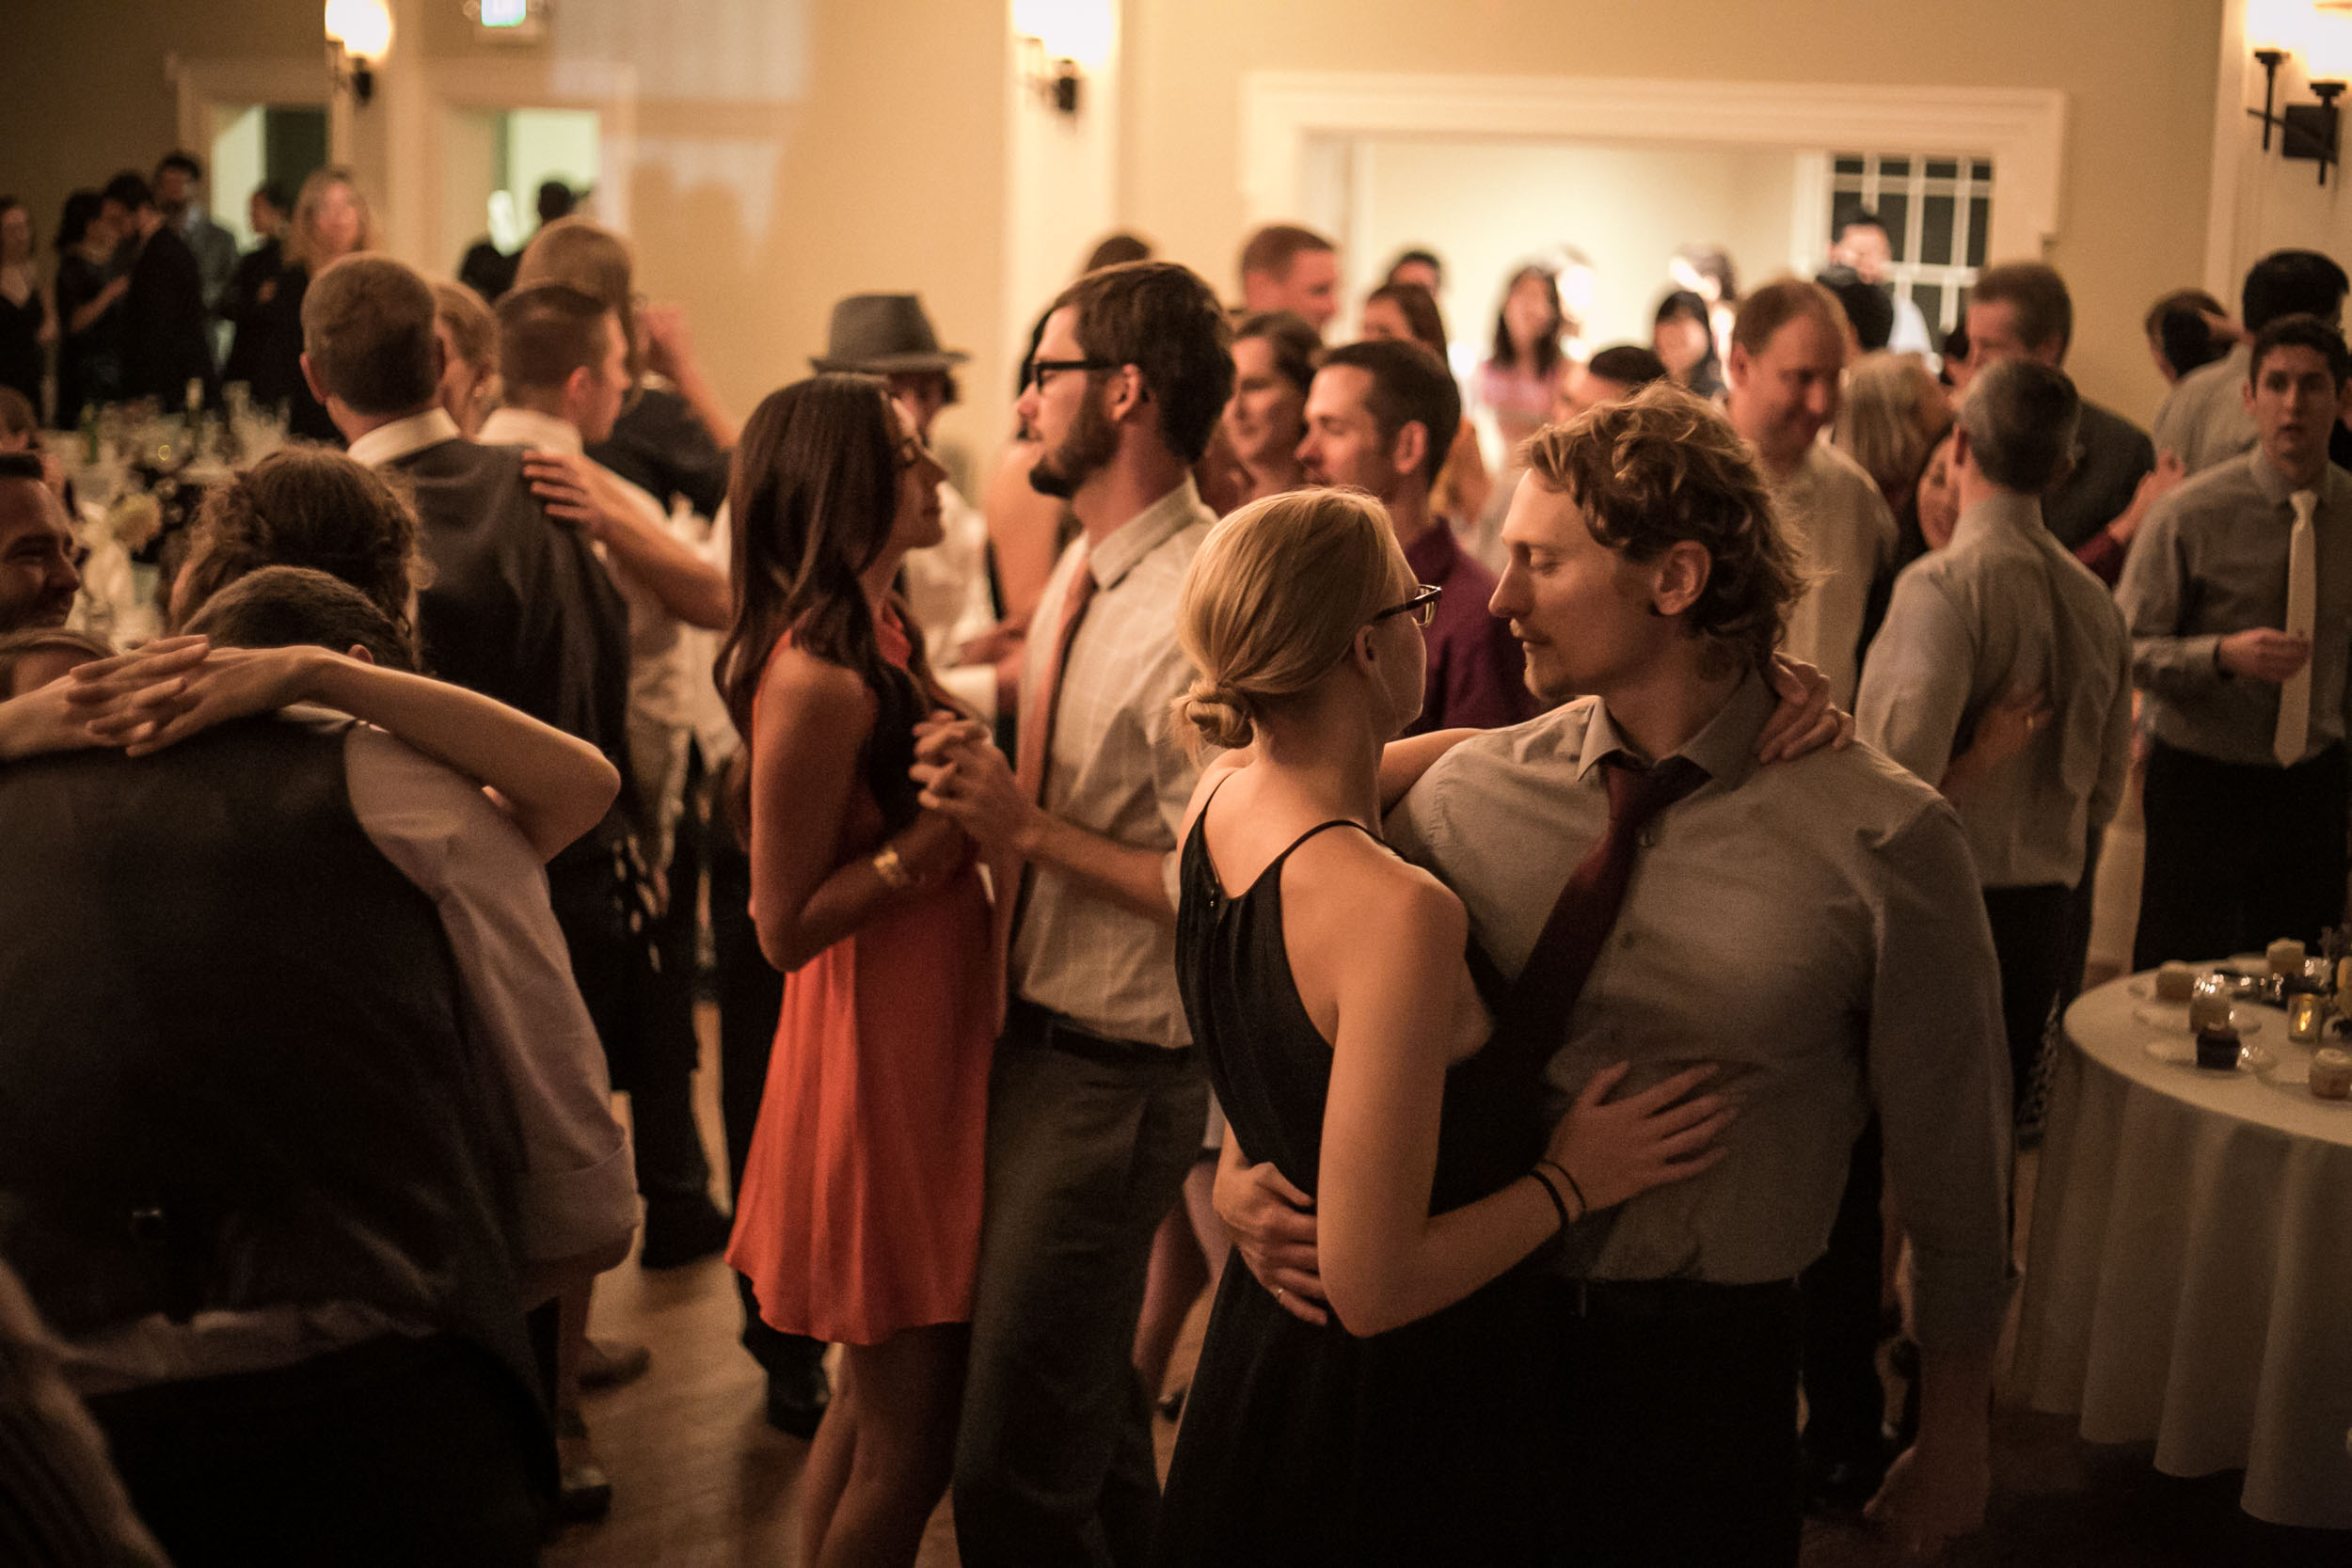 Romantic dancing for guests | The Hall at Greenlake Wedding Reception Photo | By G. Lin Photography